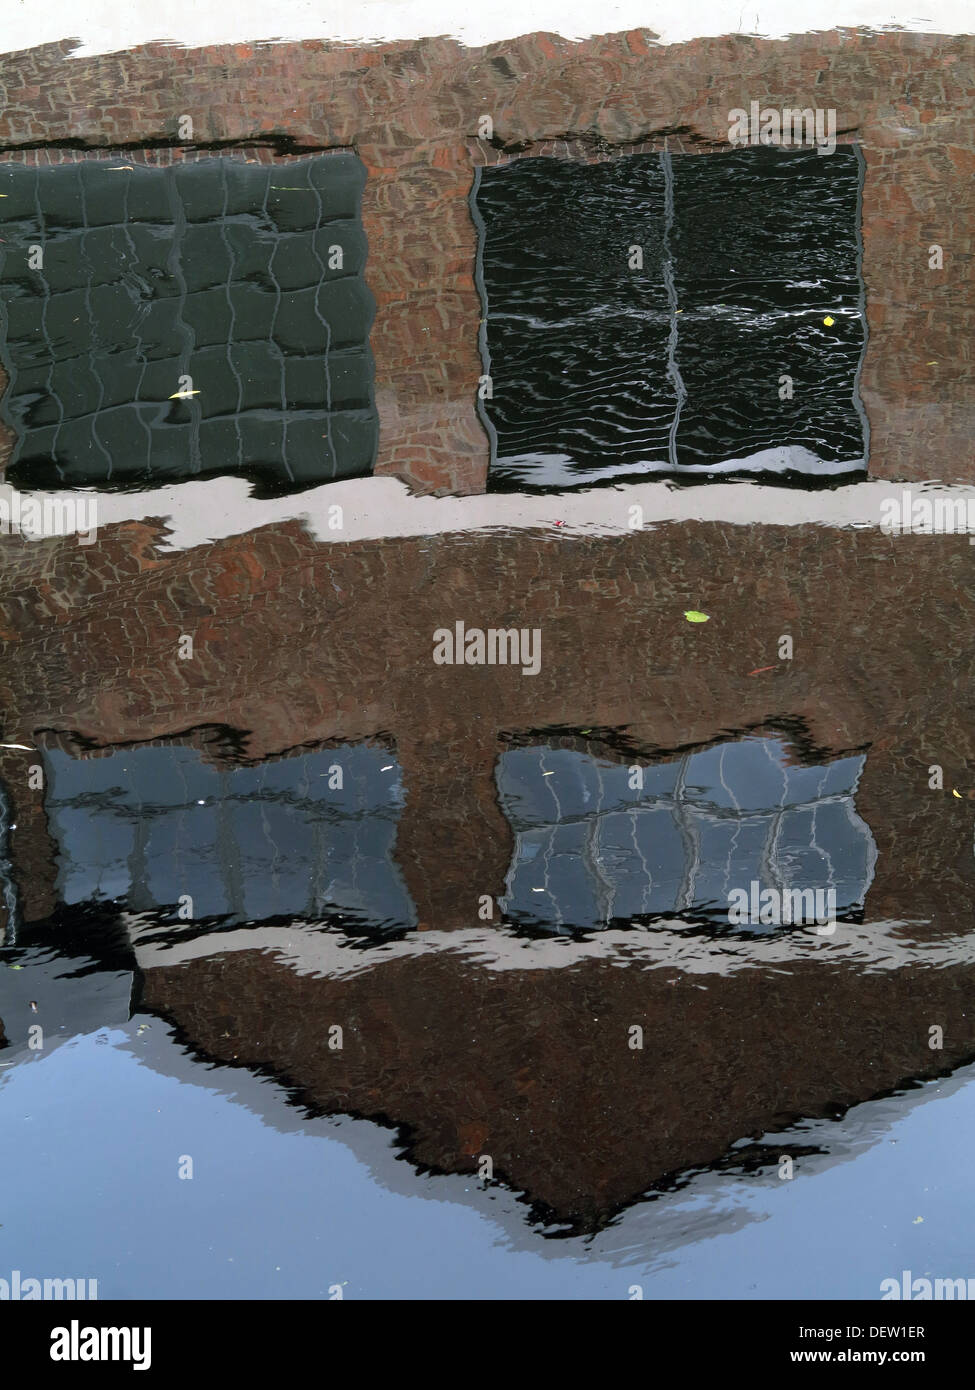 Fossgate - Reflection of brick building on the River Foss - City of York - Yorkshire - England - UK - Stock Image